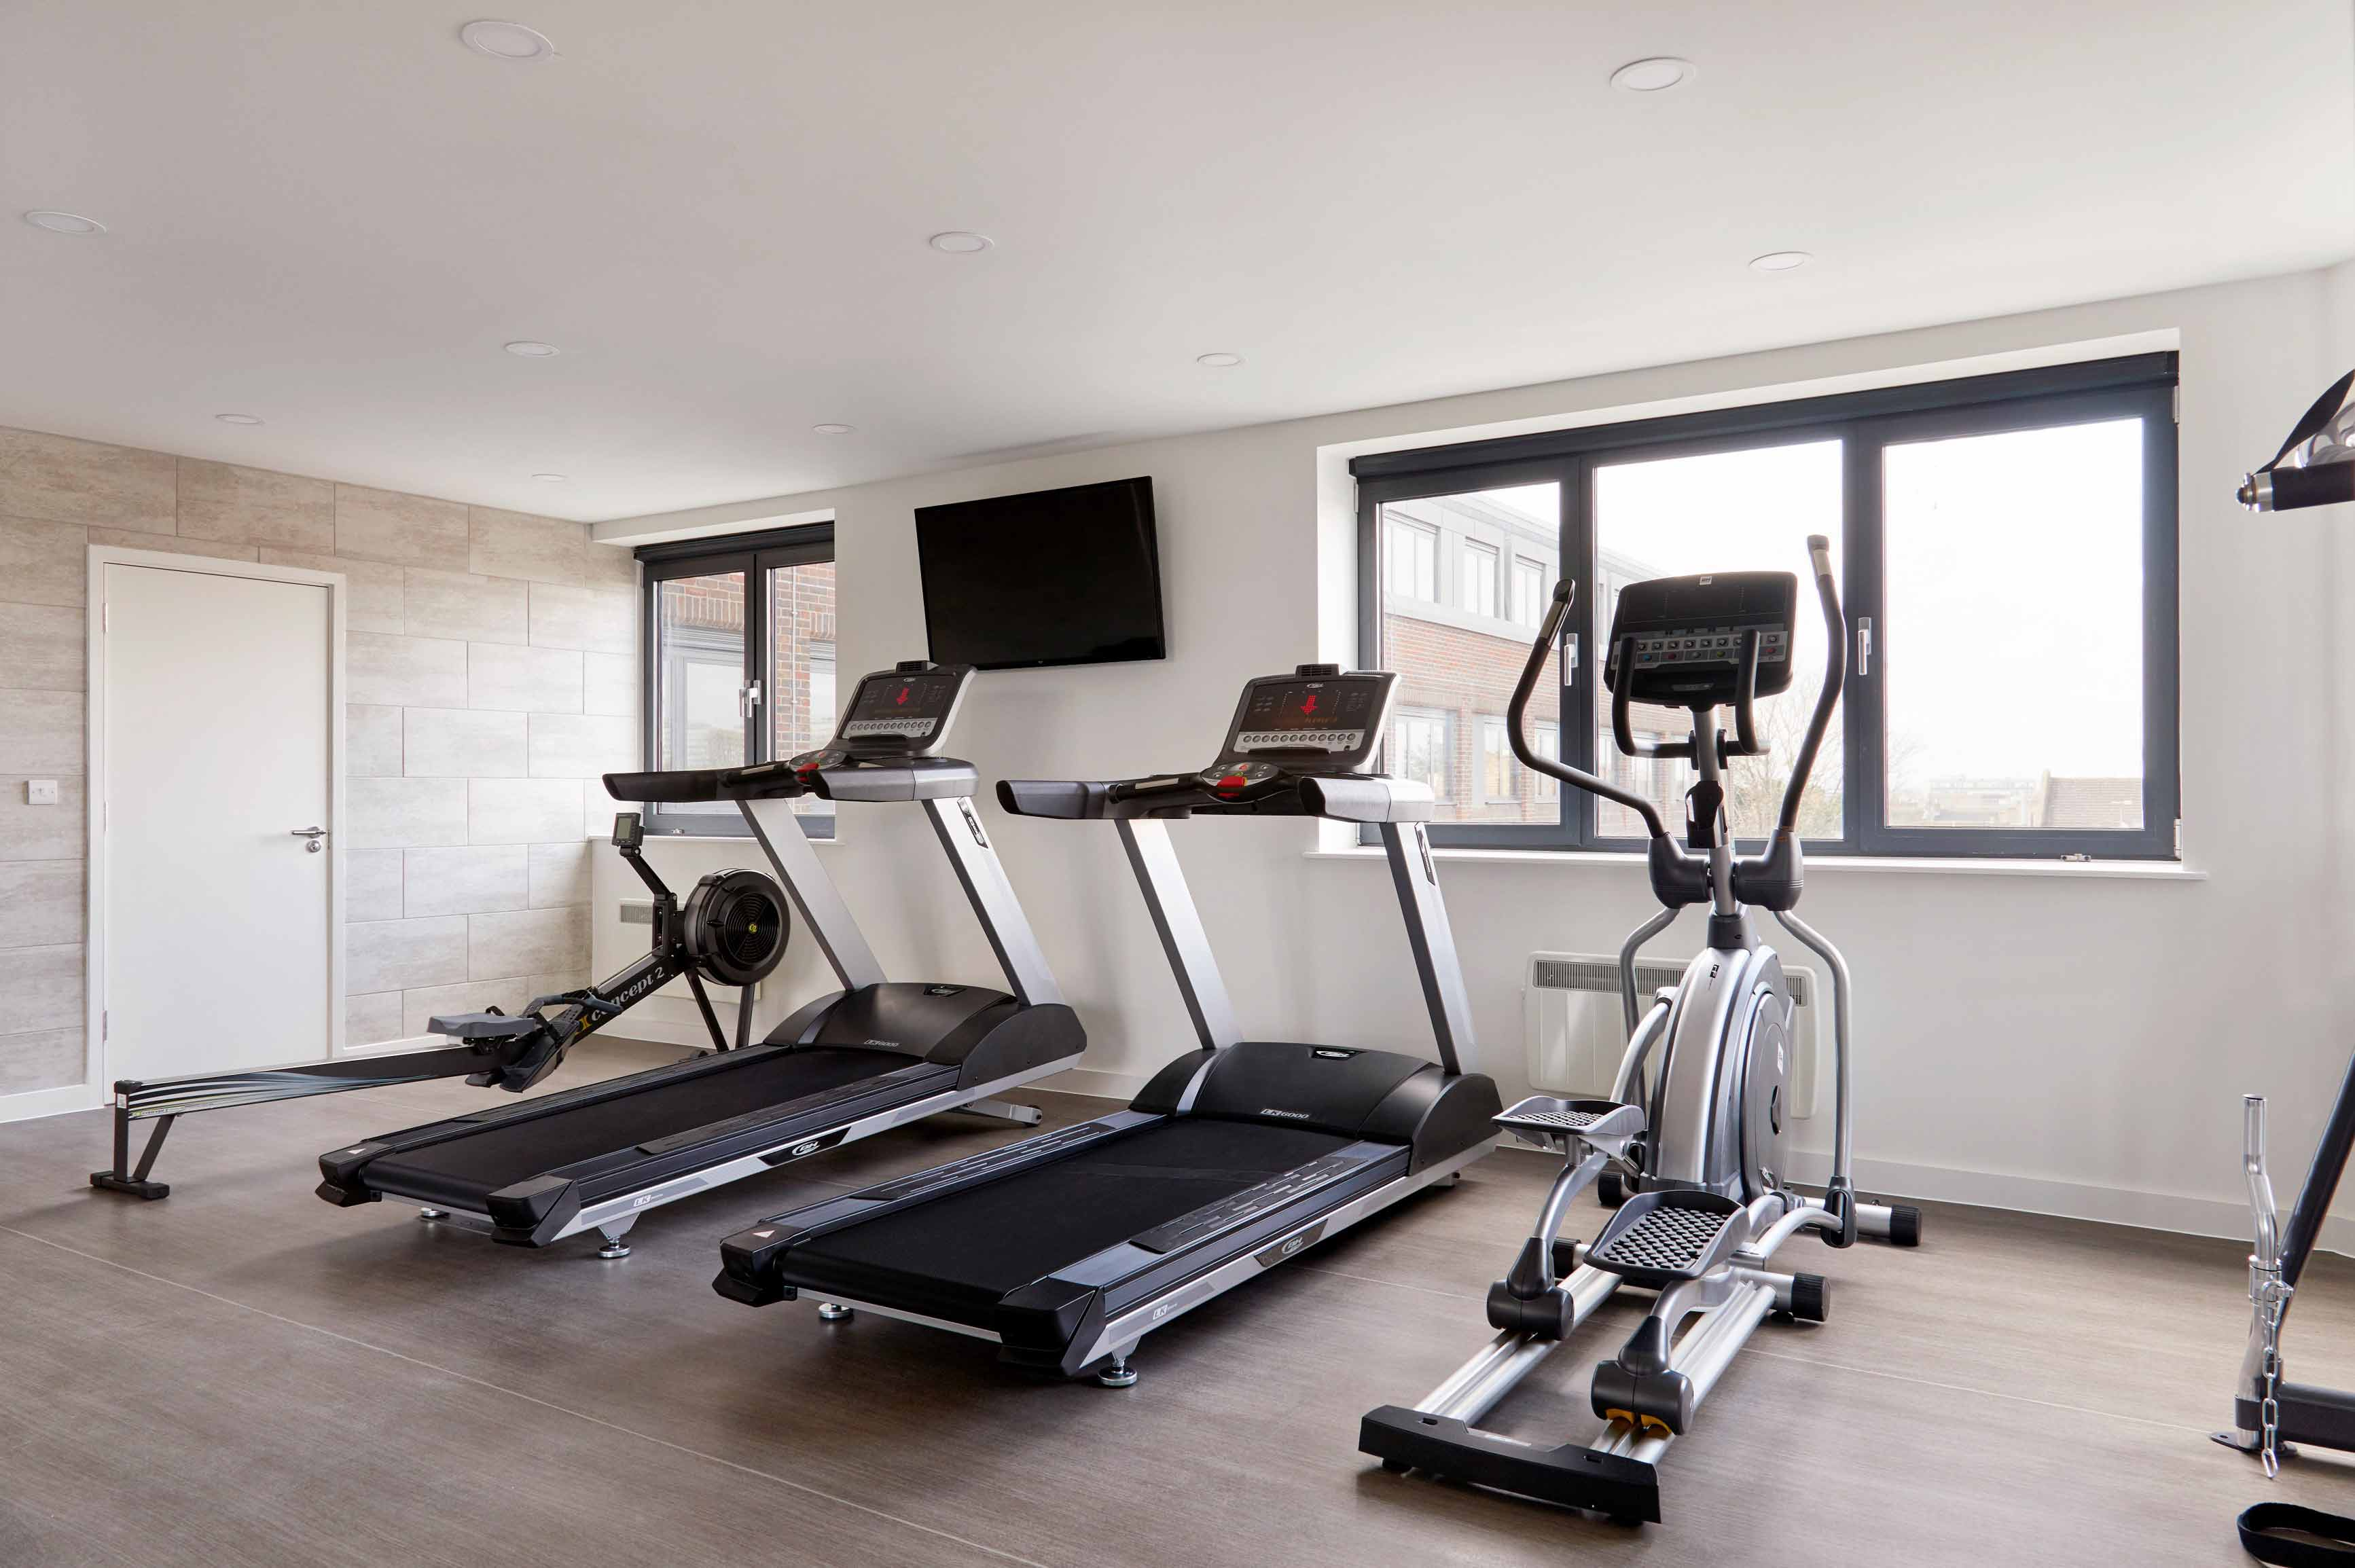 Hire fitness equipment gym